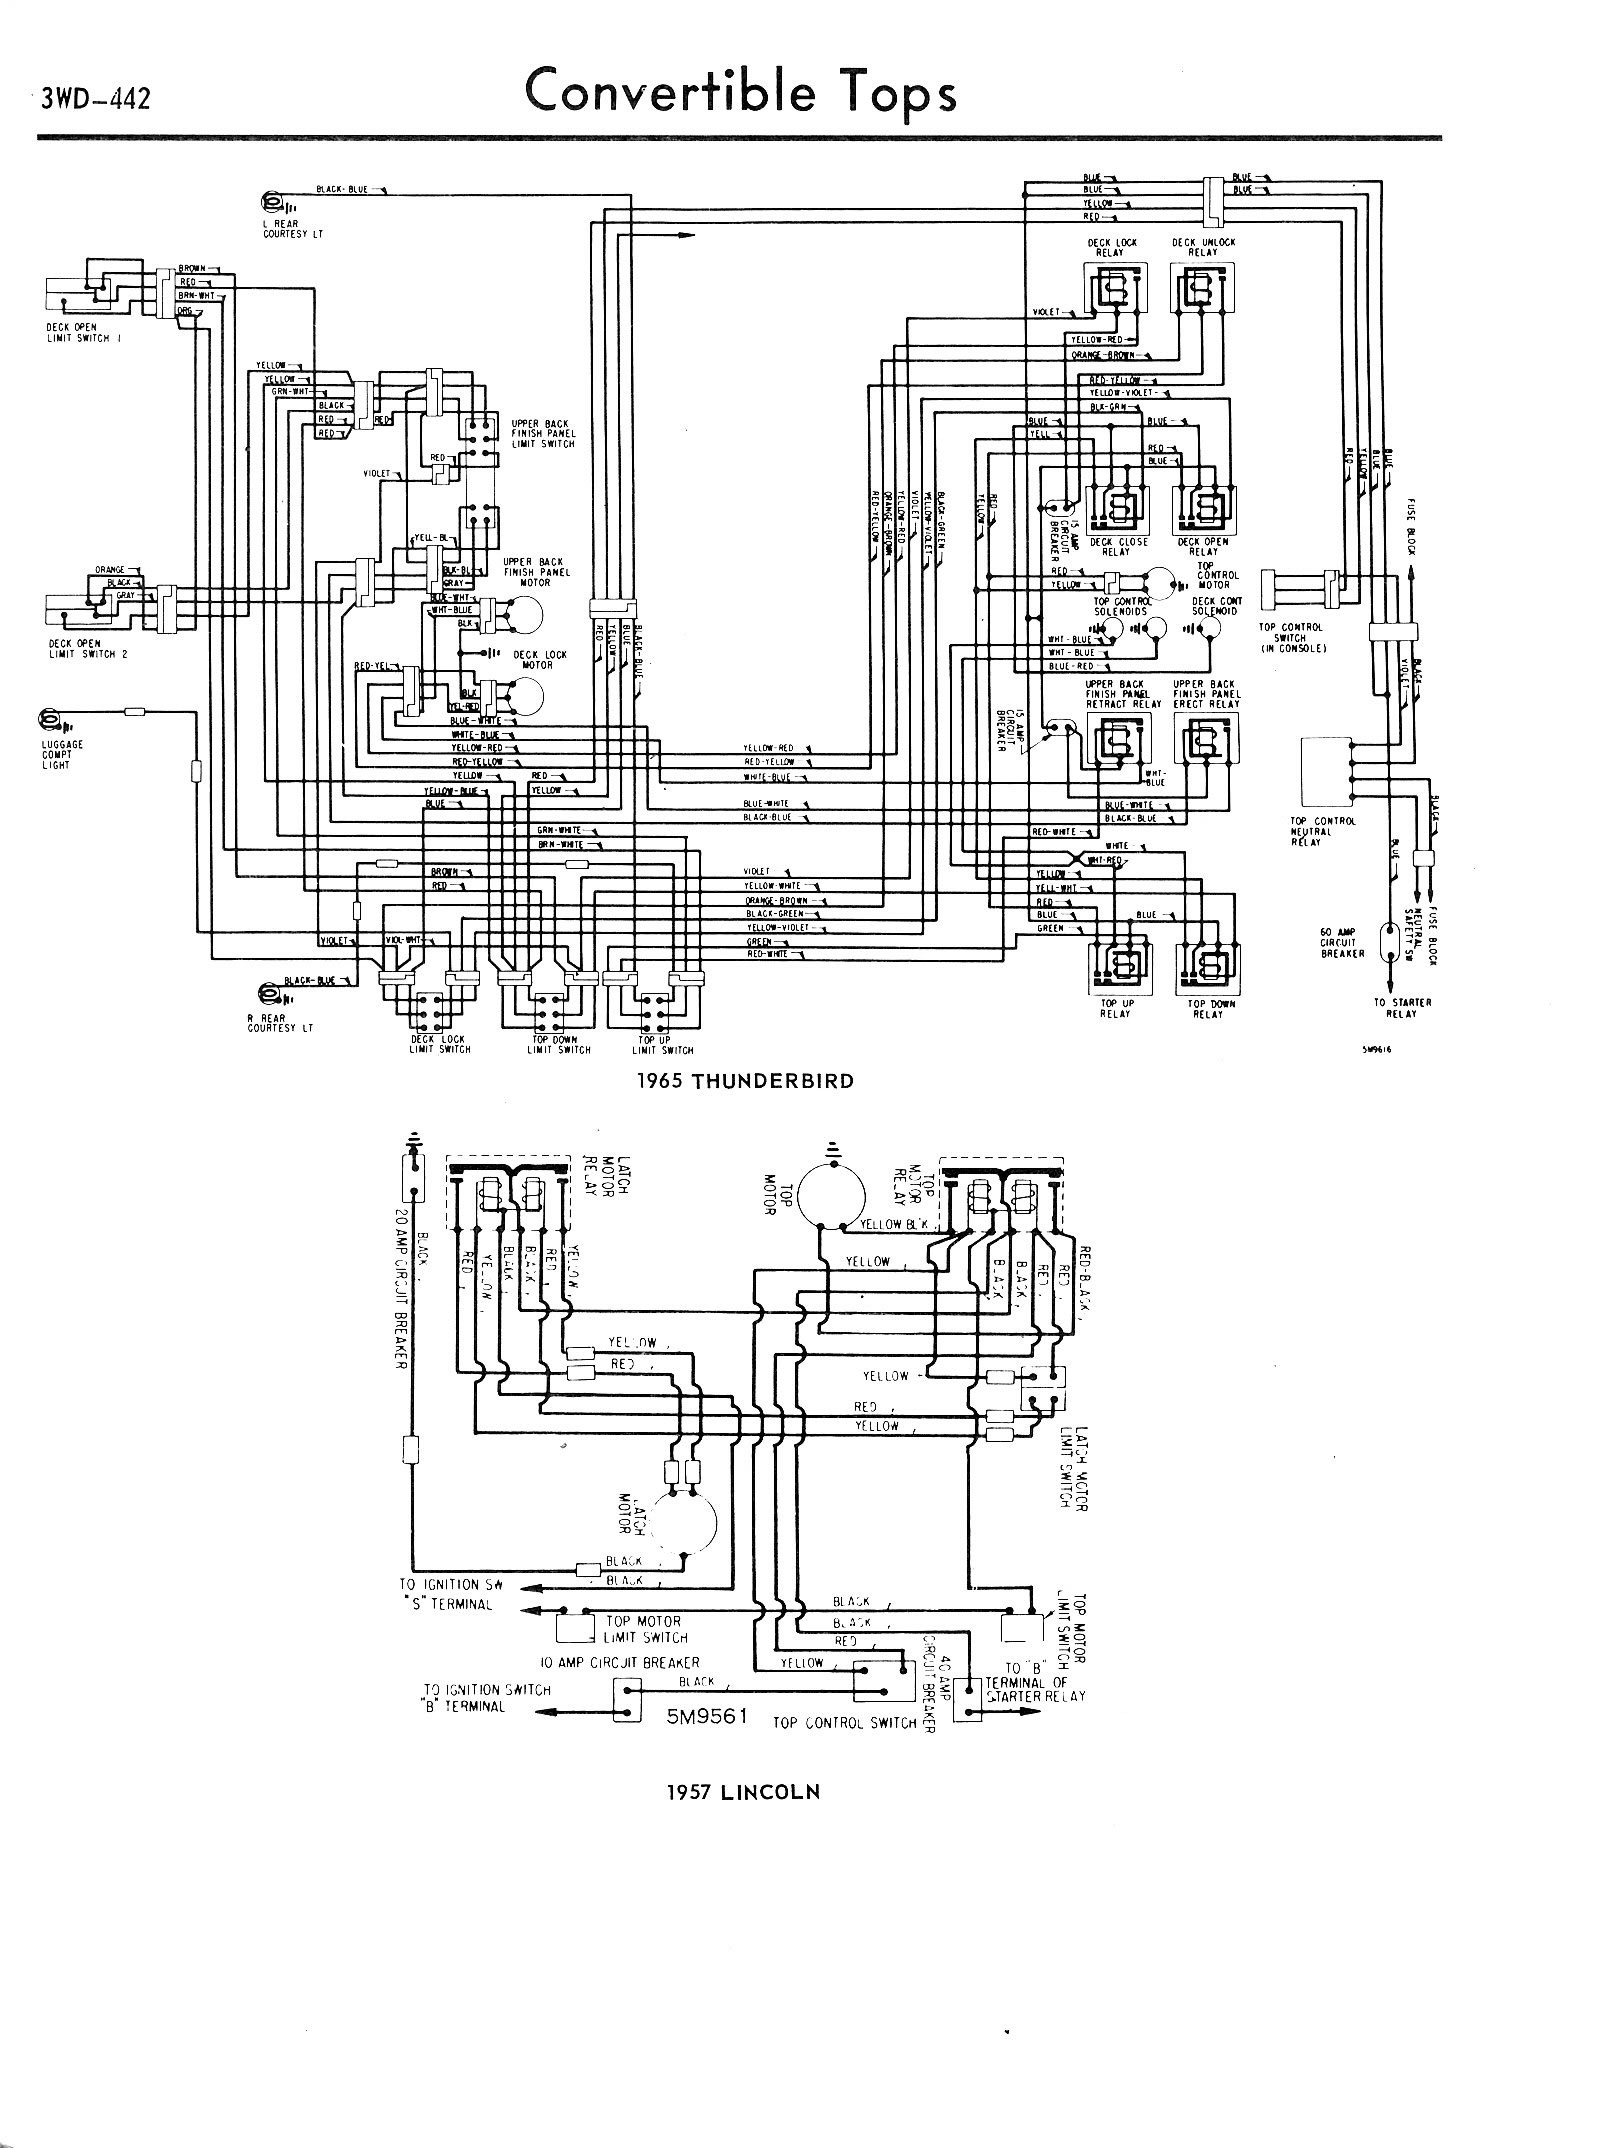 1957-1965 Accessory Wiring Diagrams / 3WD-442.jpg